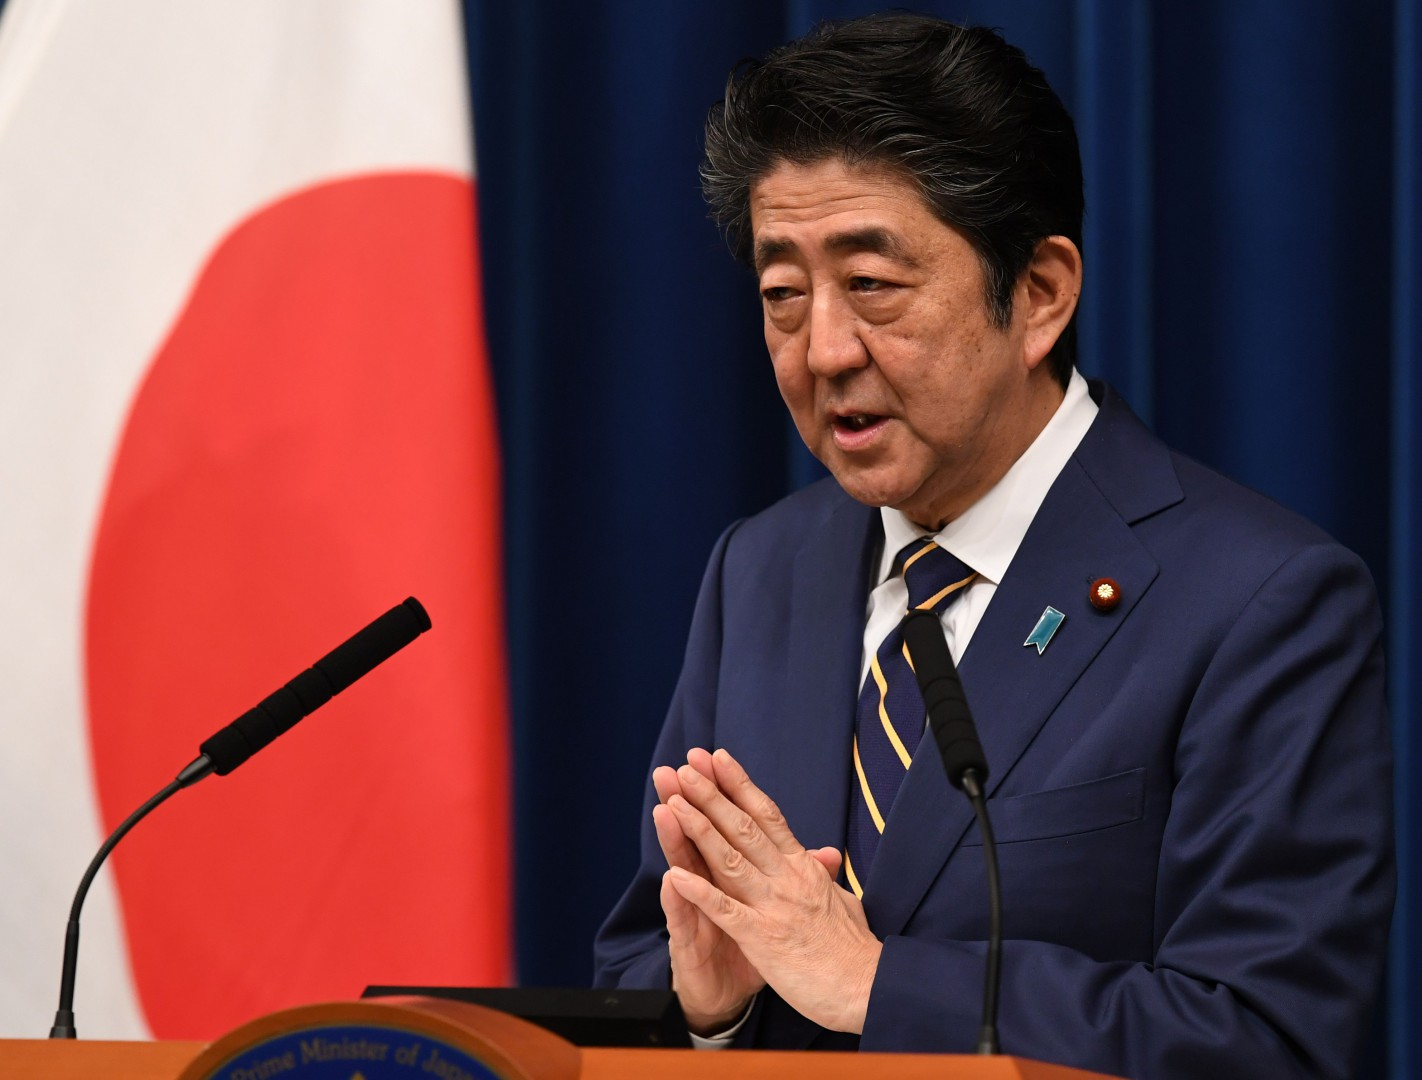 Japan's Prime Minister Shinzo Abe answers a question during a press conference at his official residence in Tokyo on December 10, 2018. (Photo by Toshifumi KITAMURA / AFP)